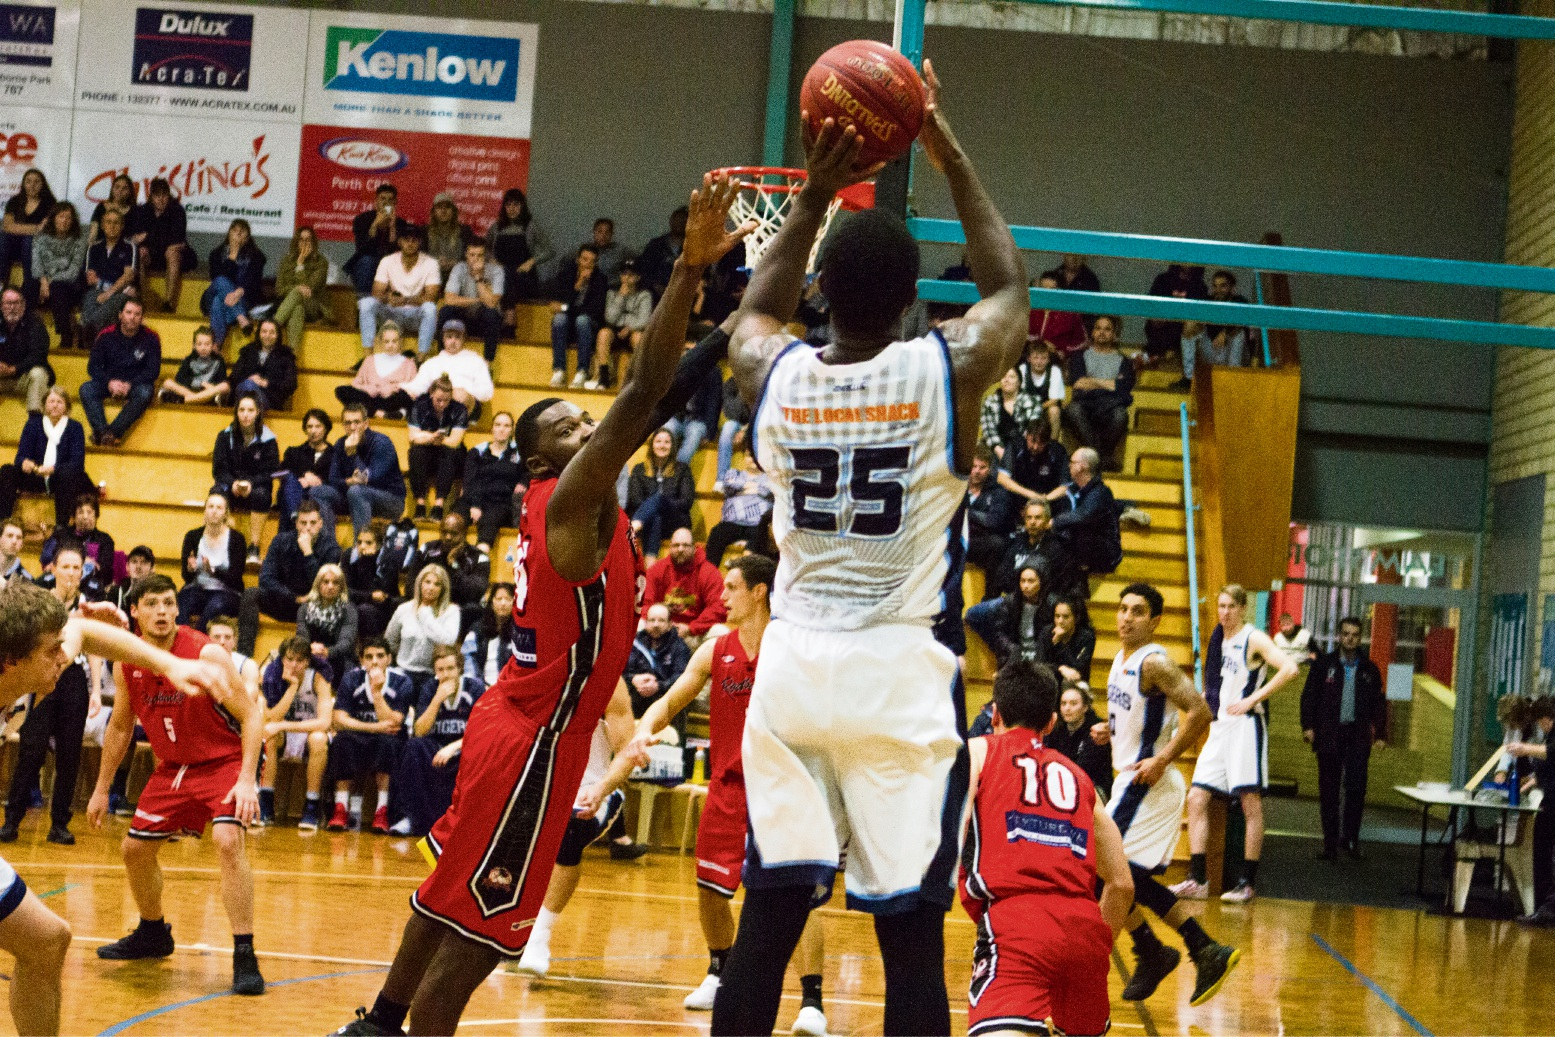 Jay Bowie takes the shot for the Willetton Tigers.